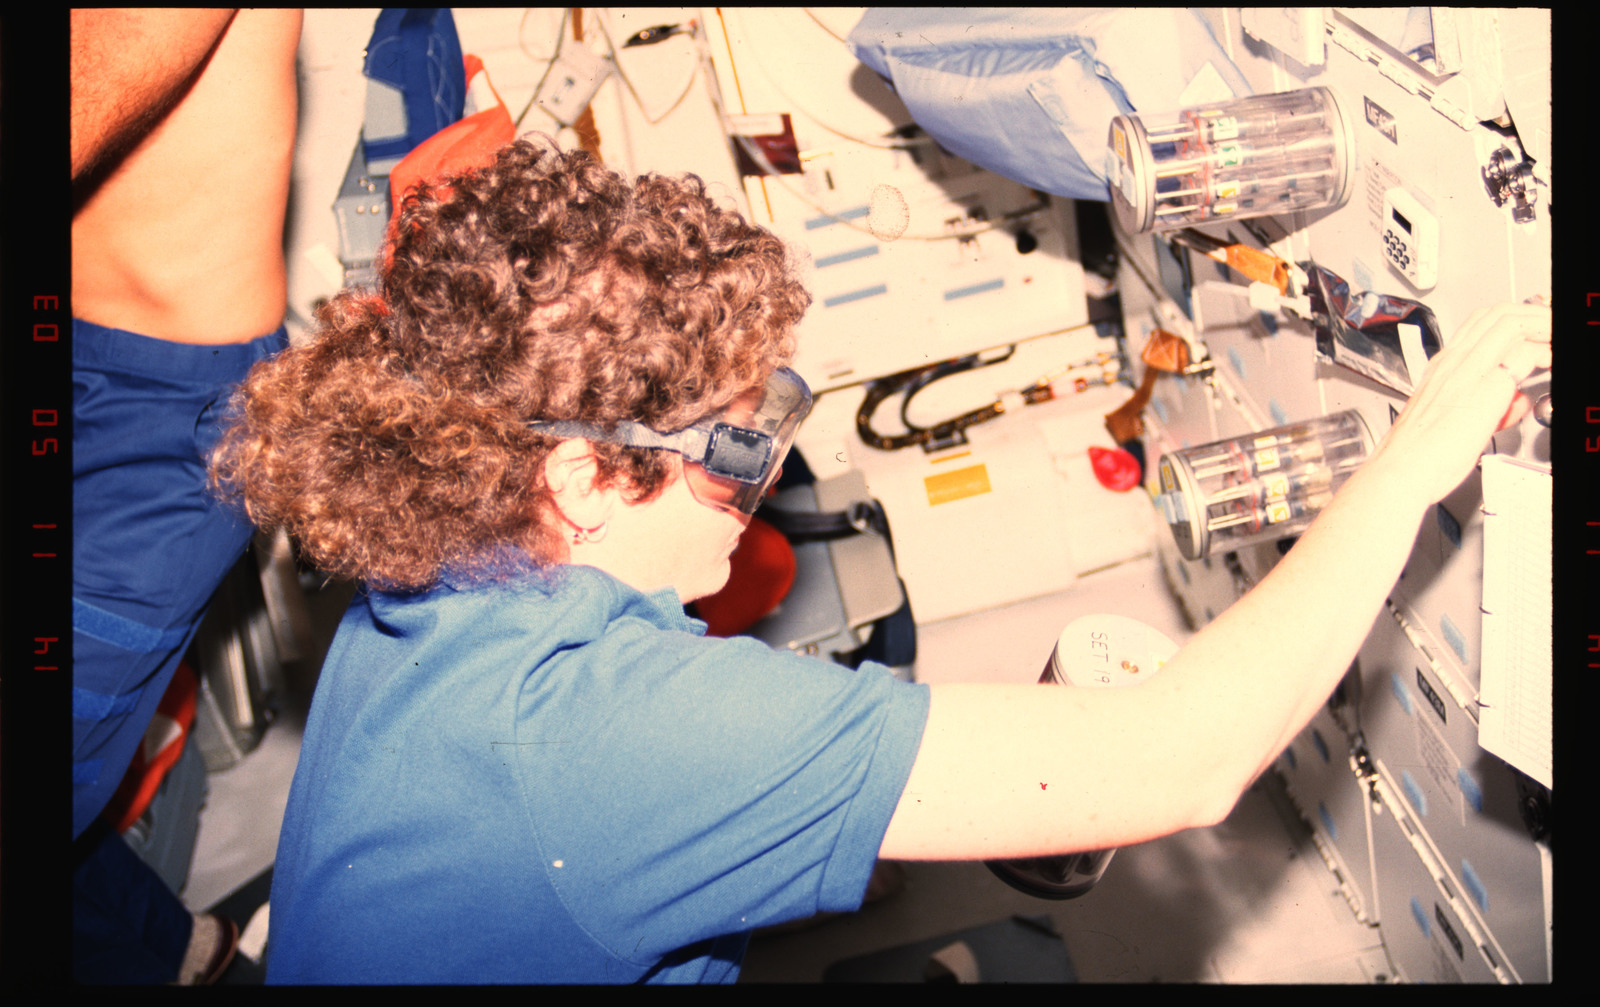 STS054-01-034 - STS-054 - Crewmember in the middeck with Commercial Generic Bioprocessing experiment.